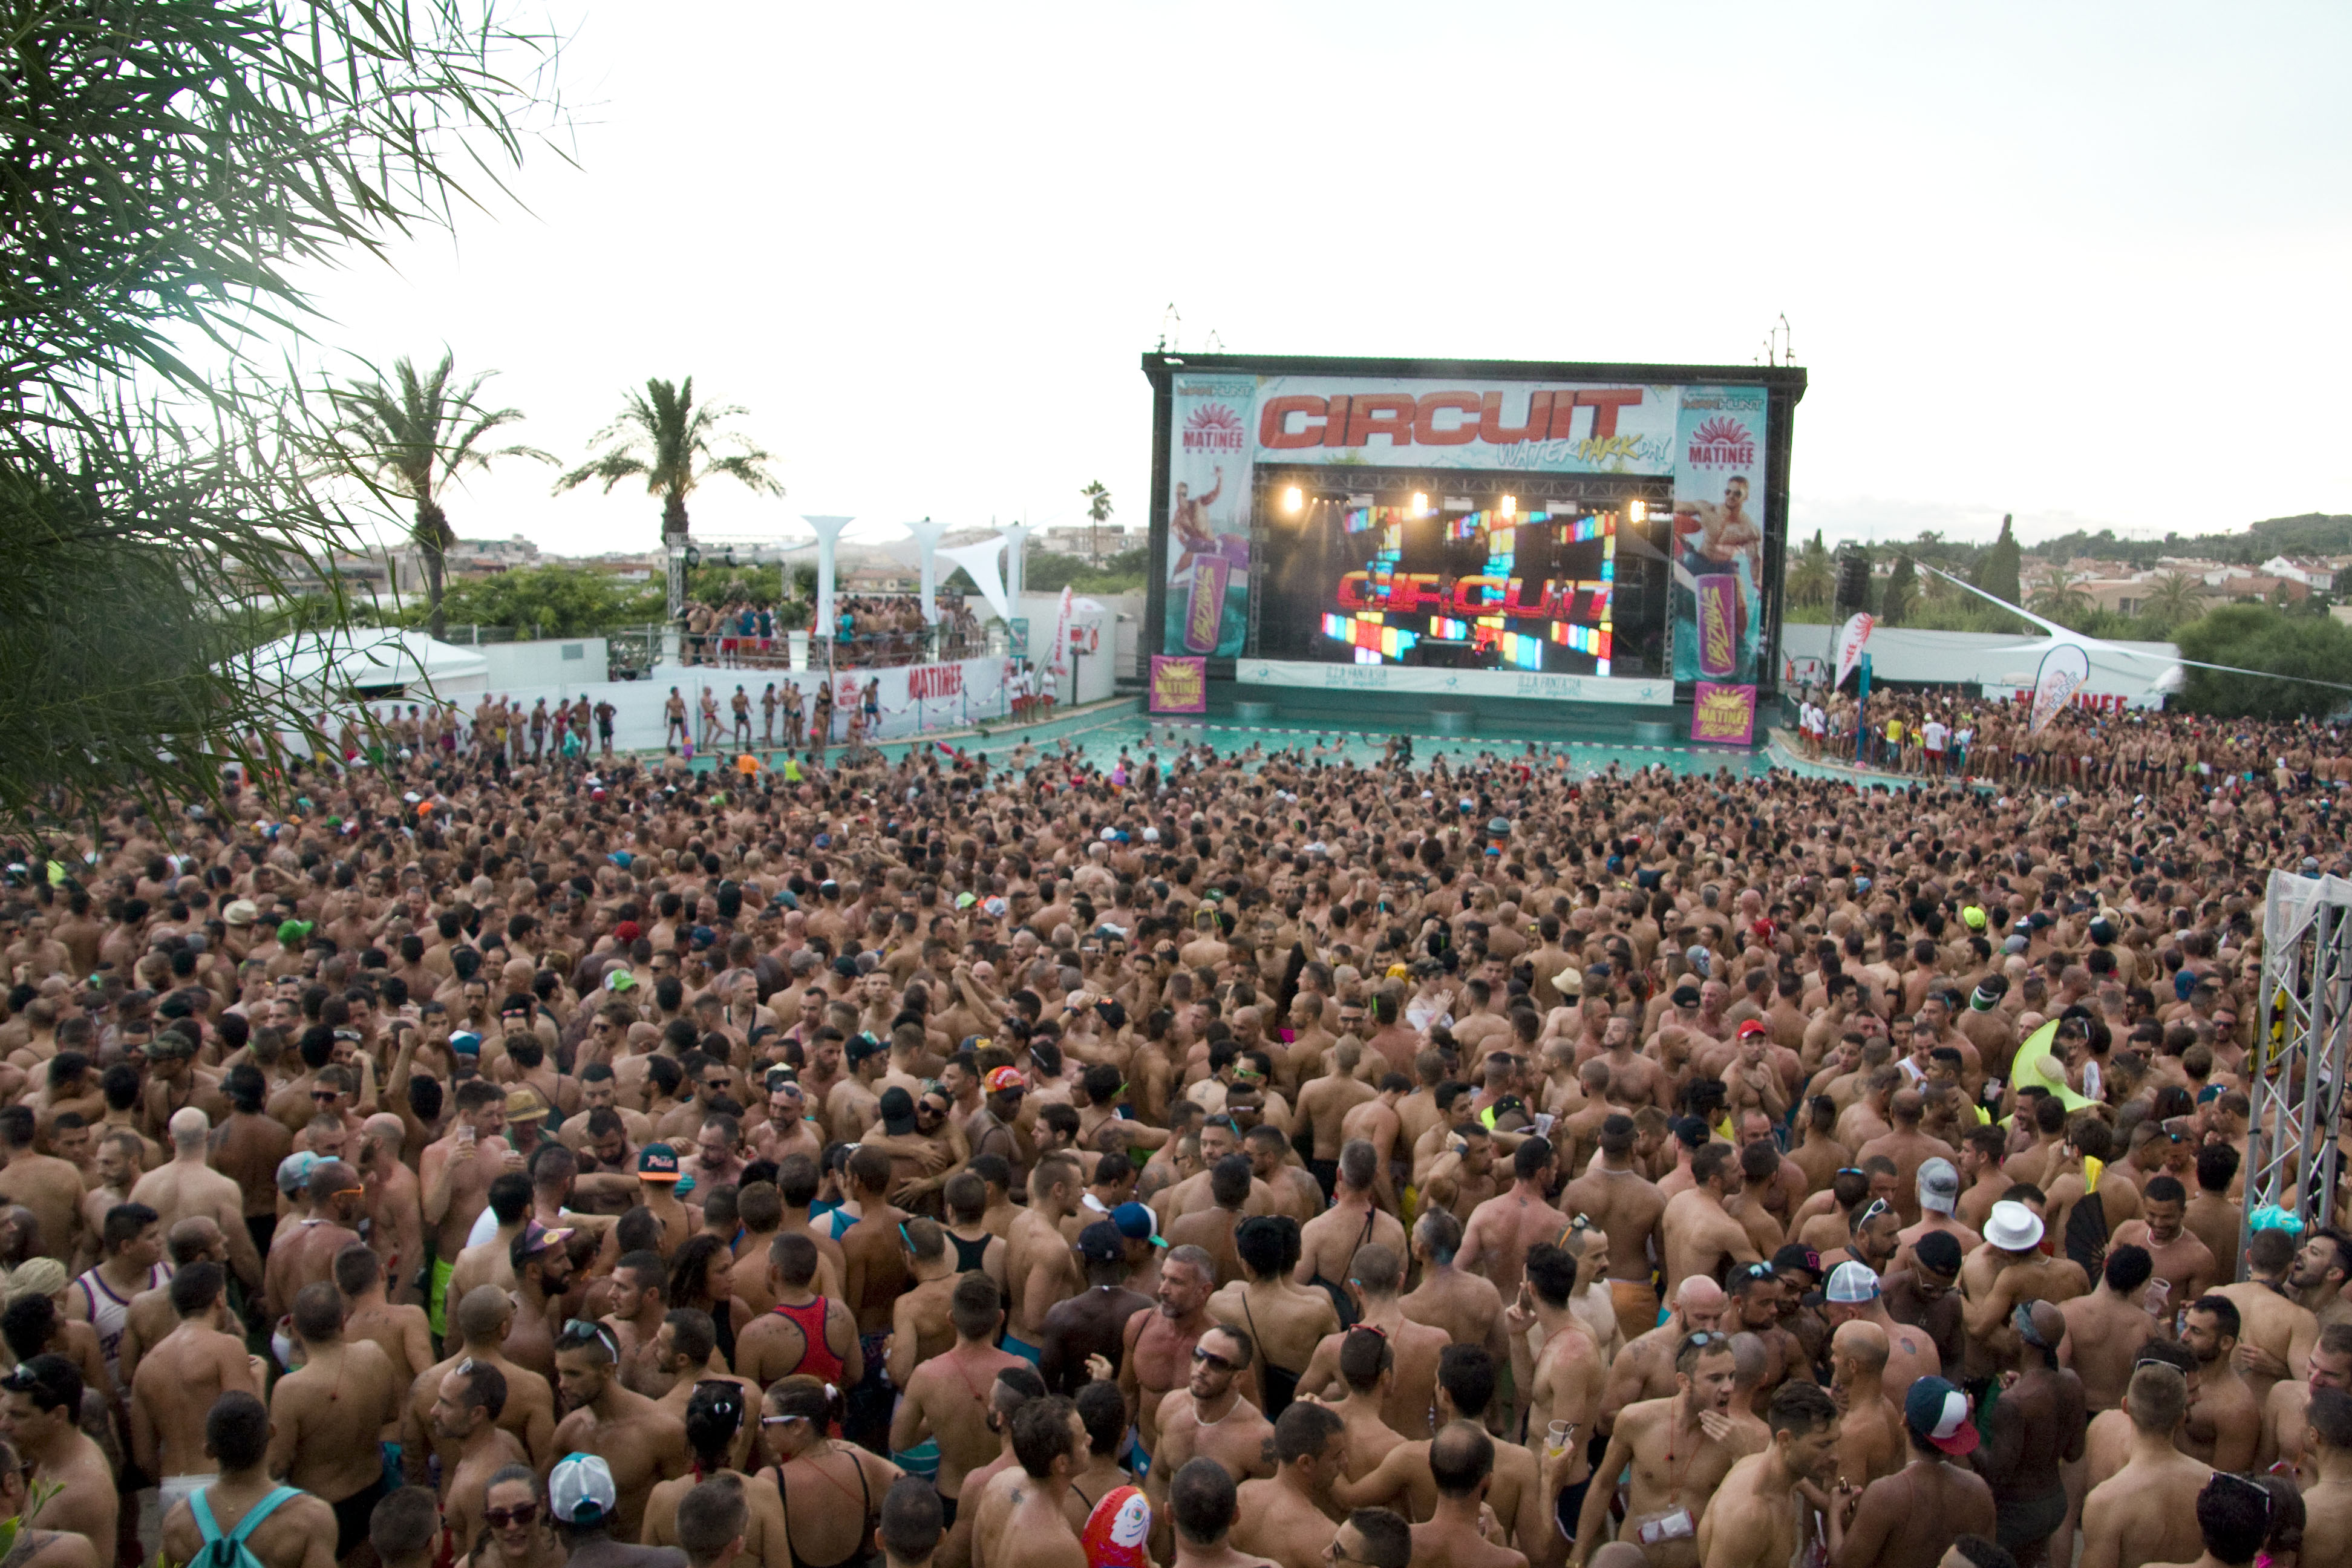 Circuit Festival Events And Guide Barcelona